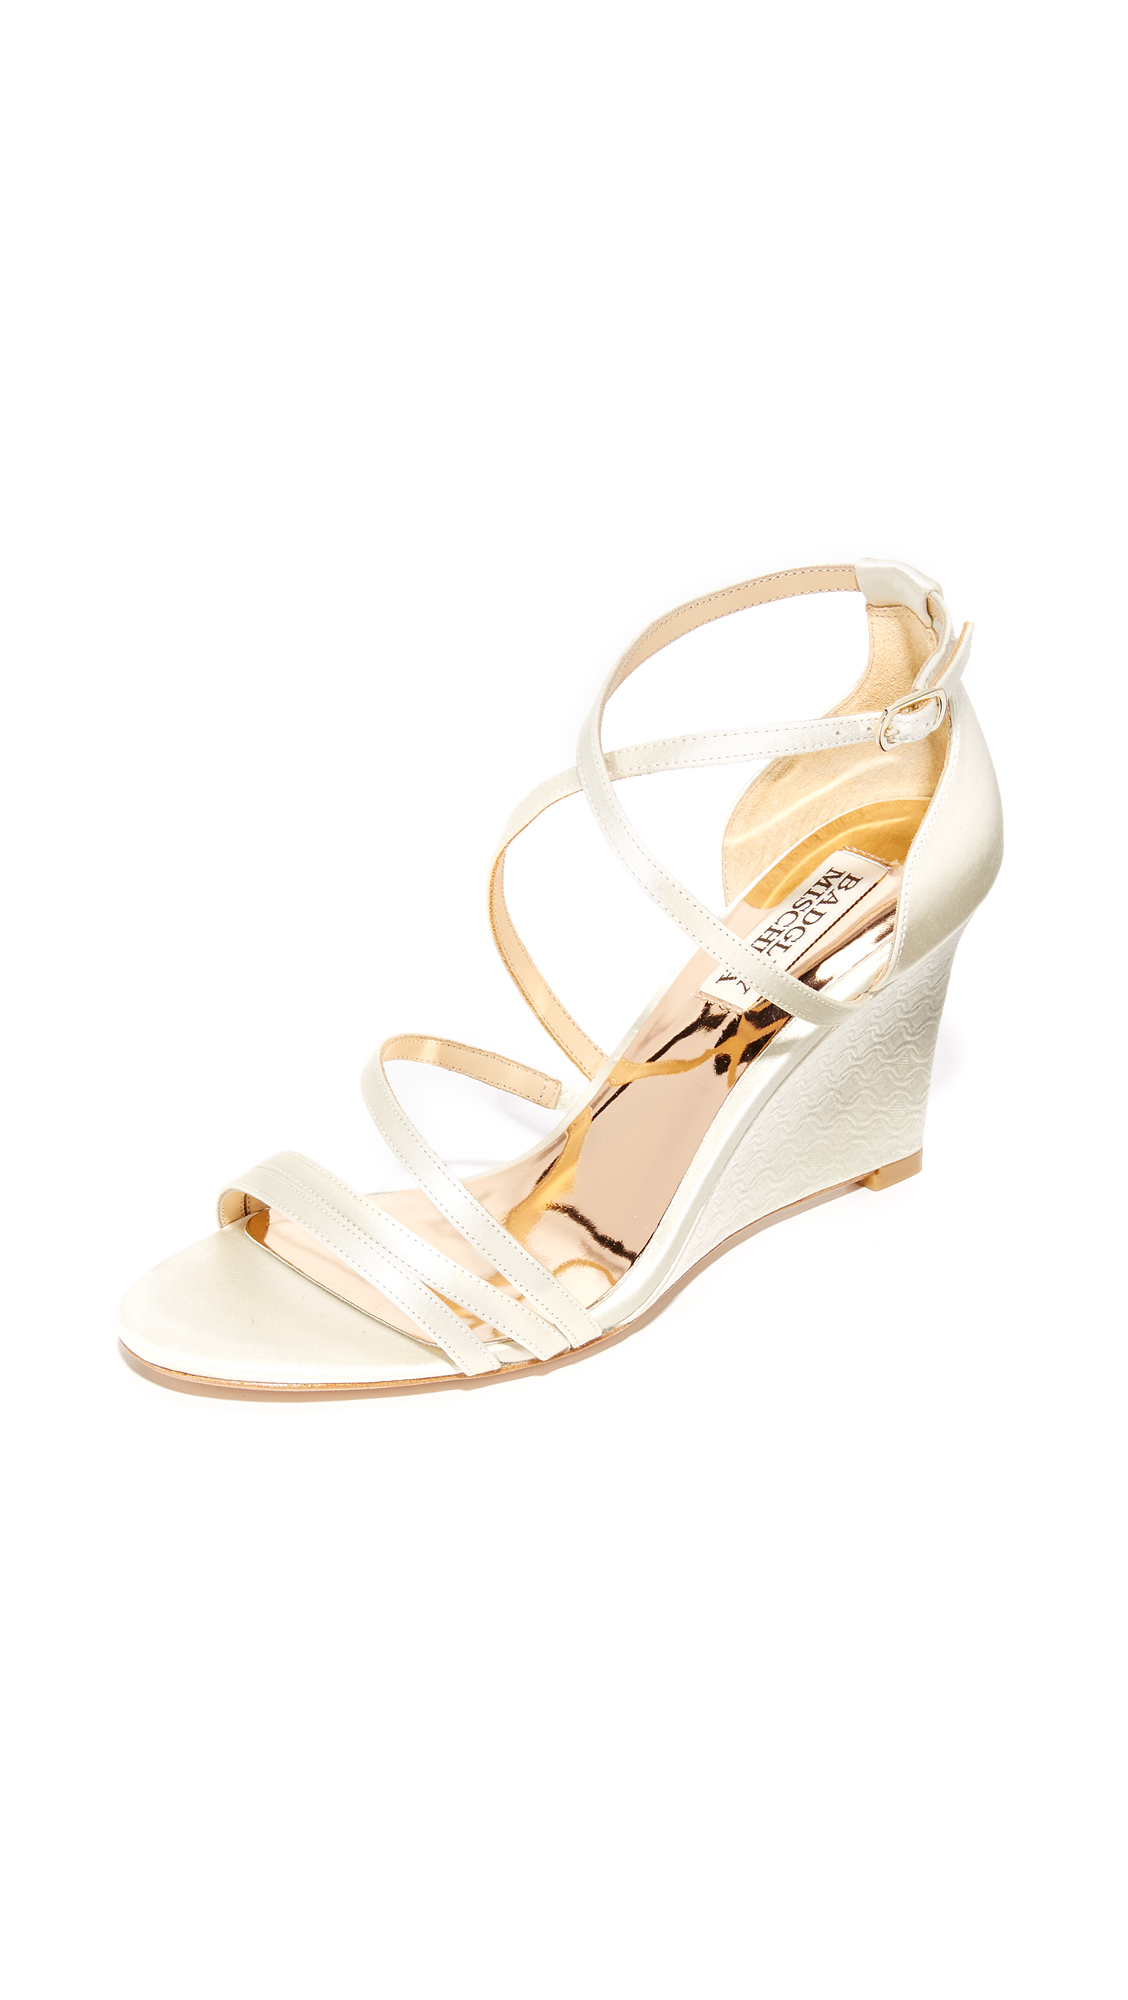 badgley mischka female badgley mischka bonanza wedge sandals ivory